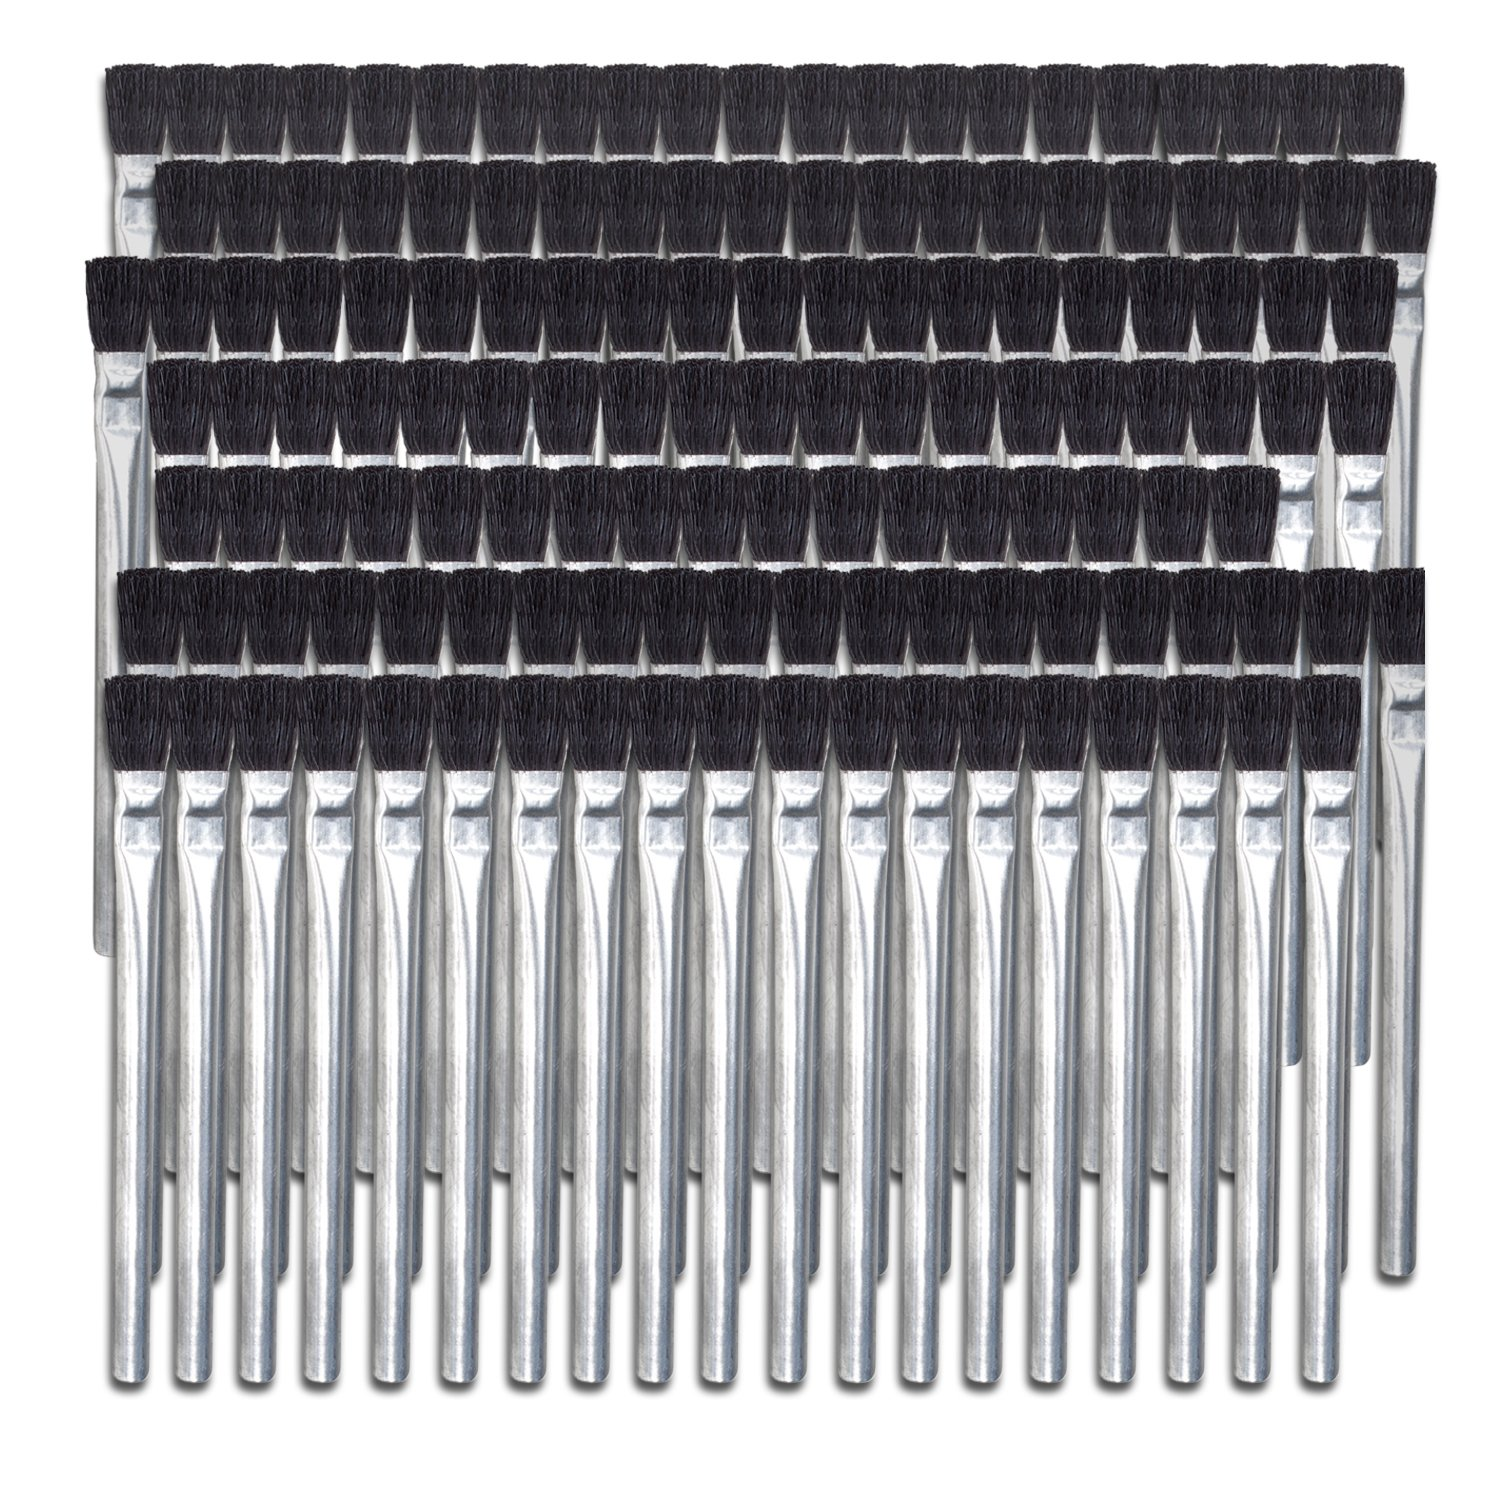 Mercer 191300 Acid Brush 5-3/4'' x 3/8'' Horsehair Fill, 144-Pack